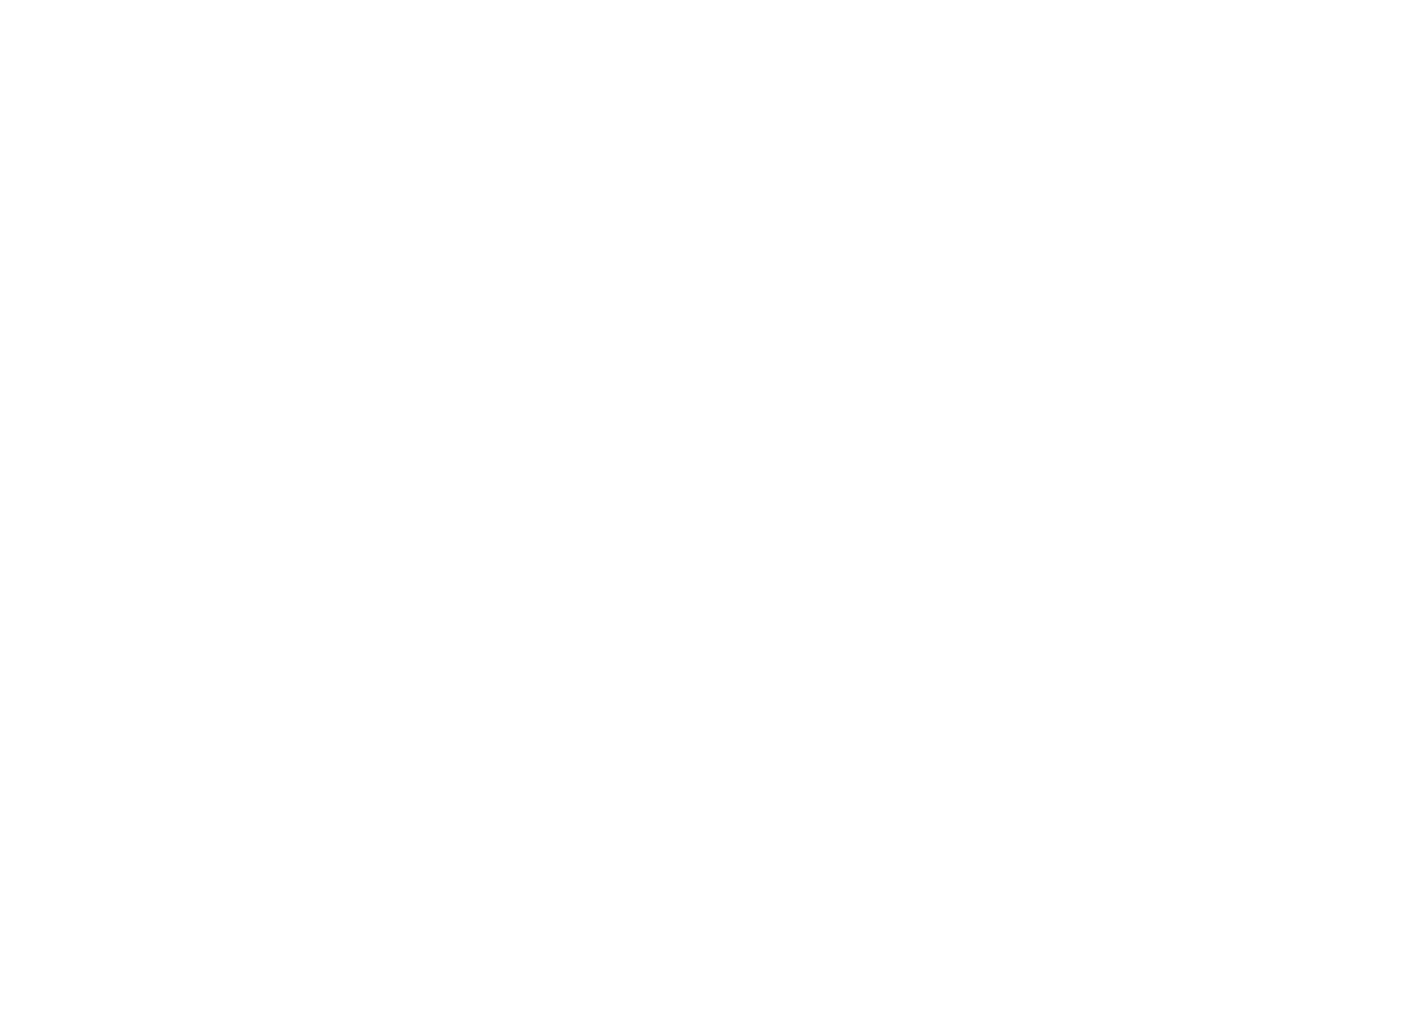 Liberty Training Academy